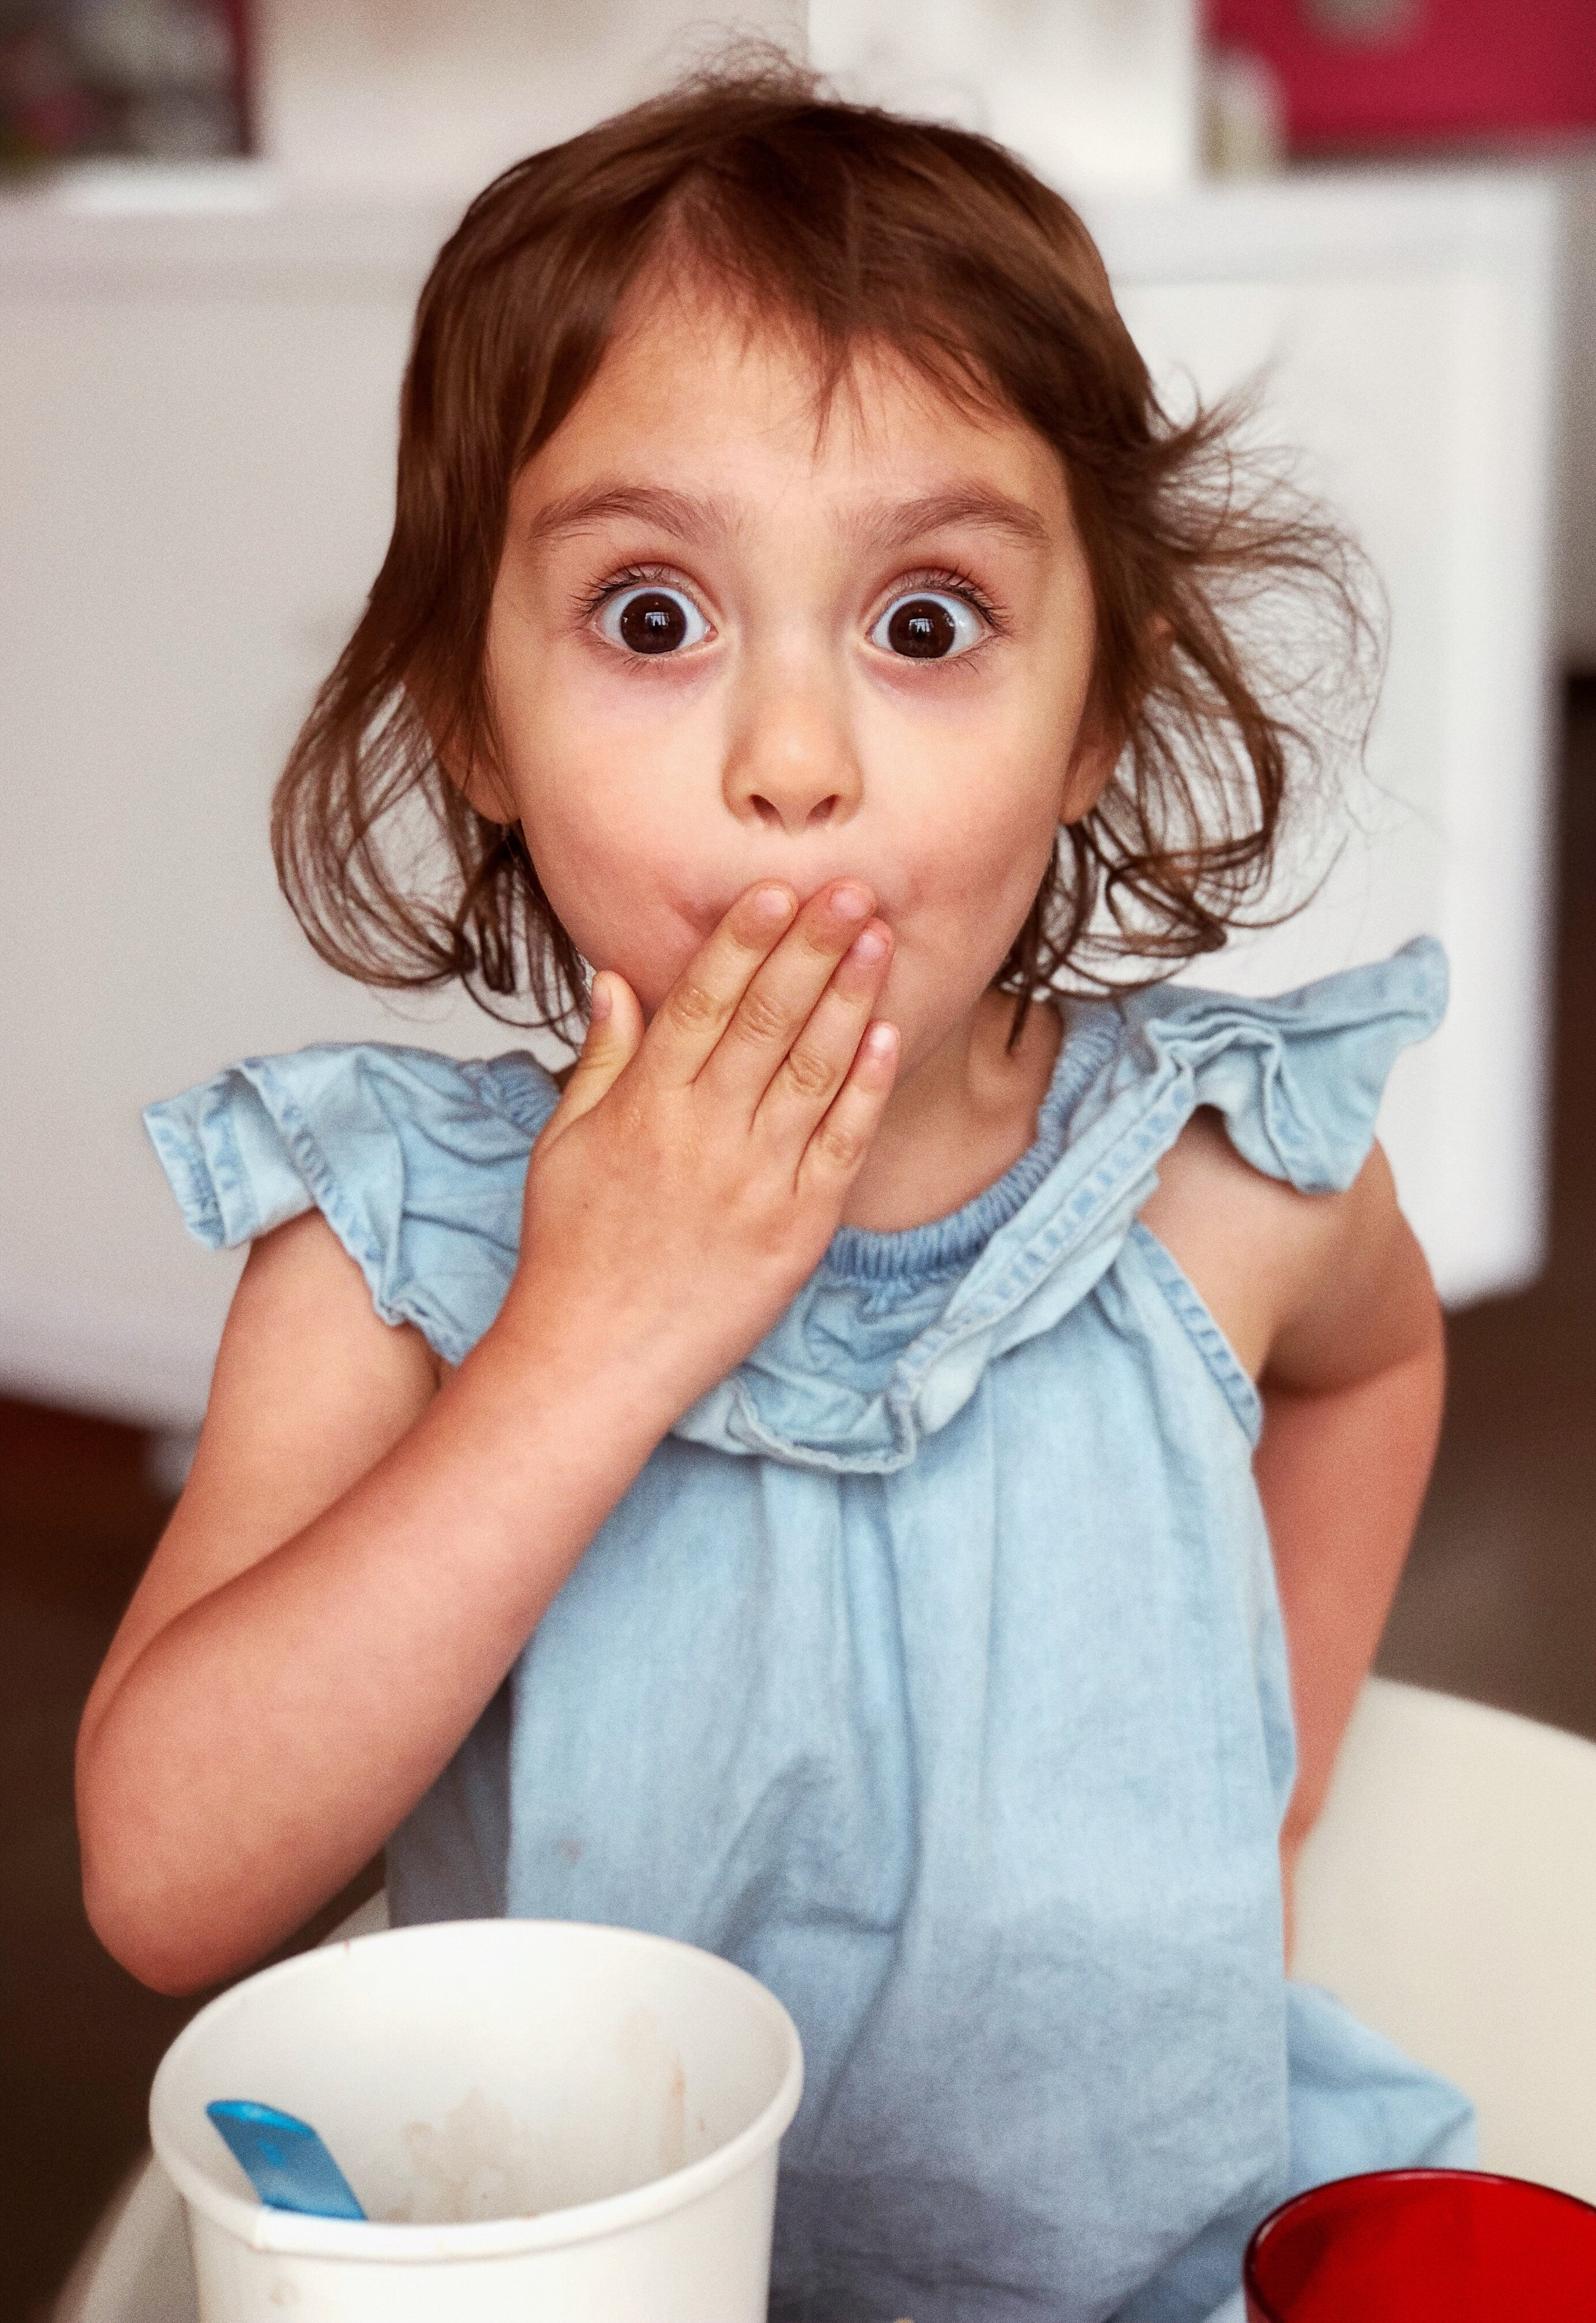 Photo of a surprised little girl | Photo: Unsplash